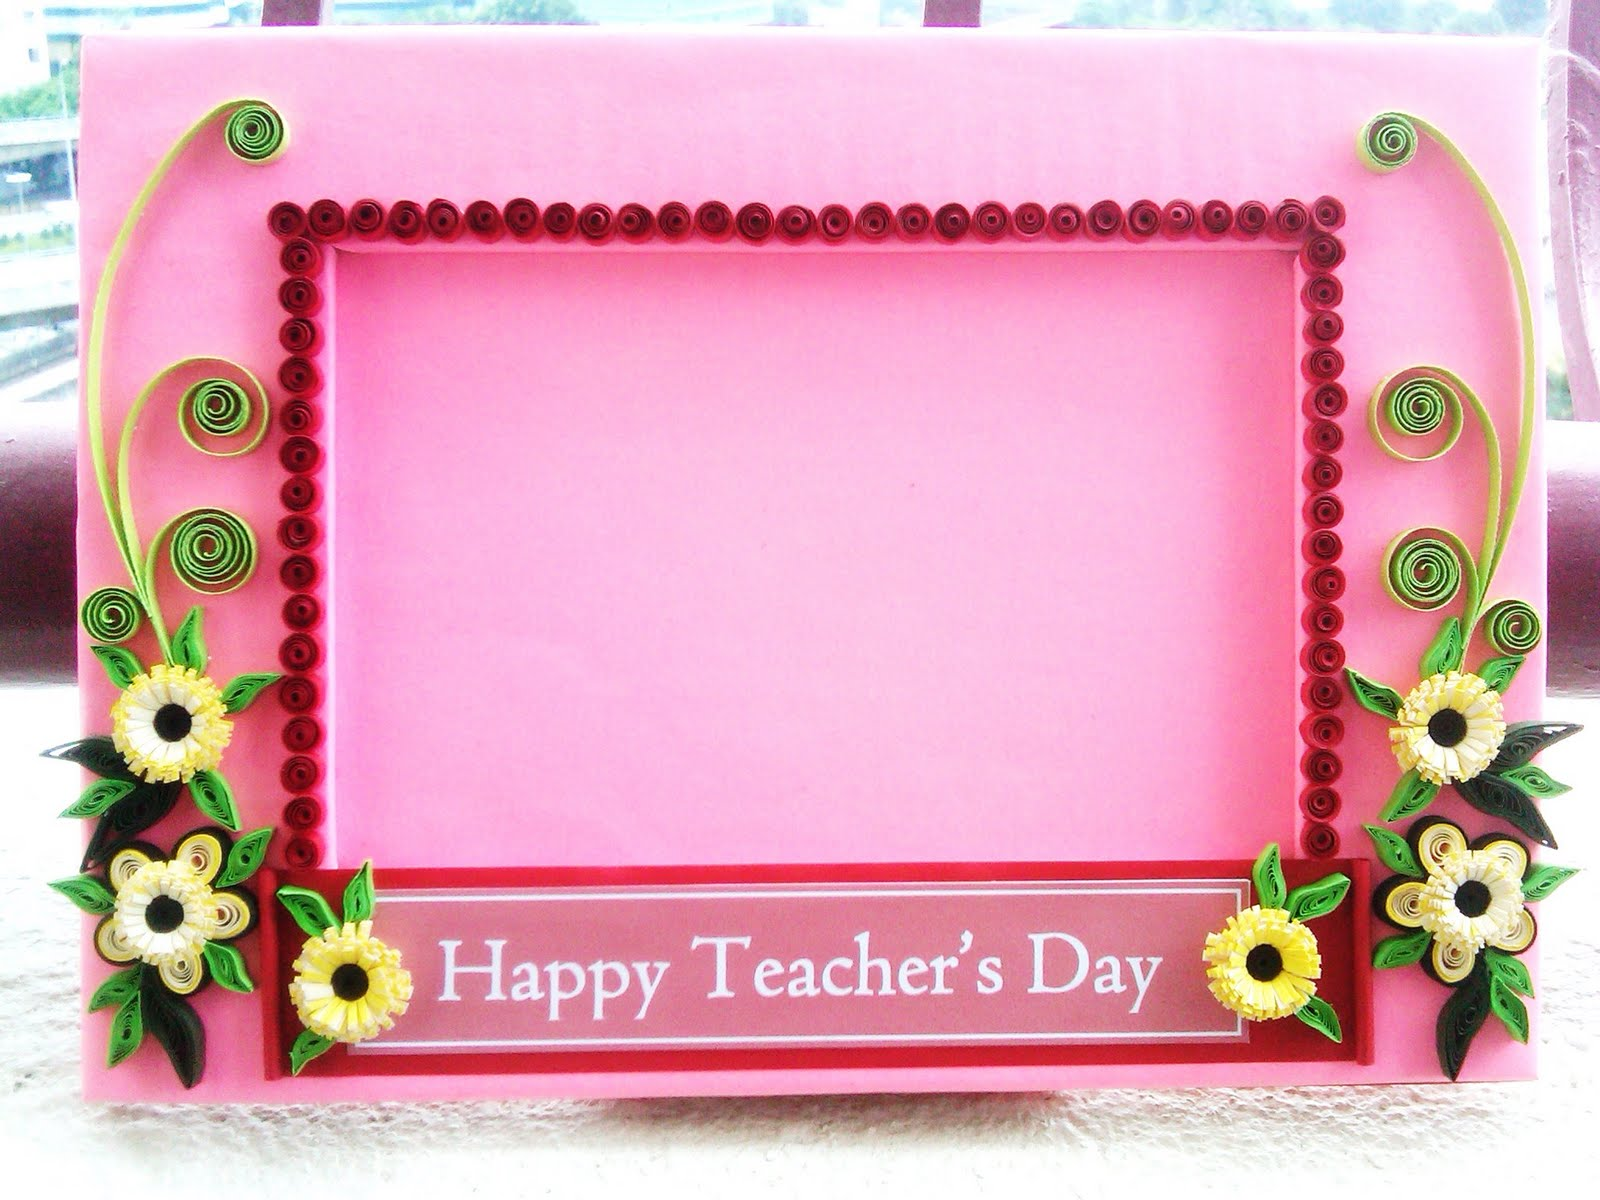 Happy Teacher Day Card Design Hd Images Wallpaper For Downloads